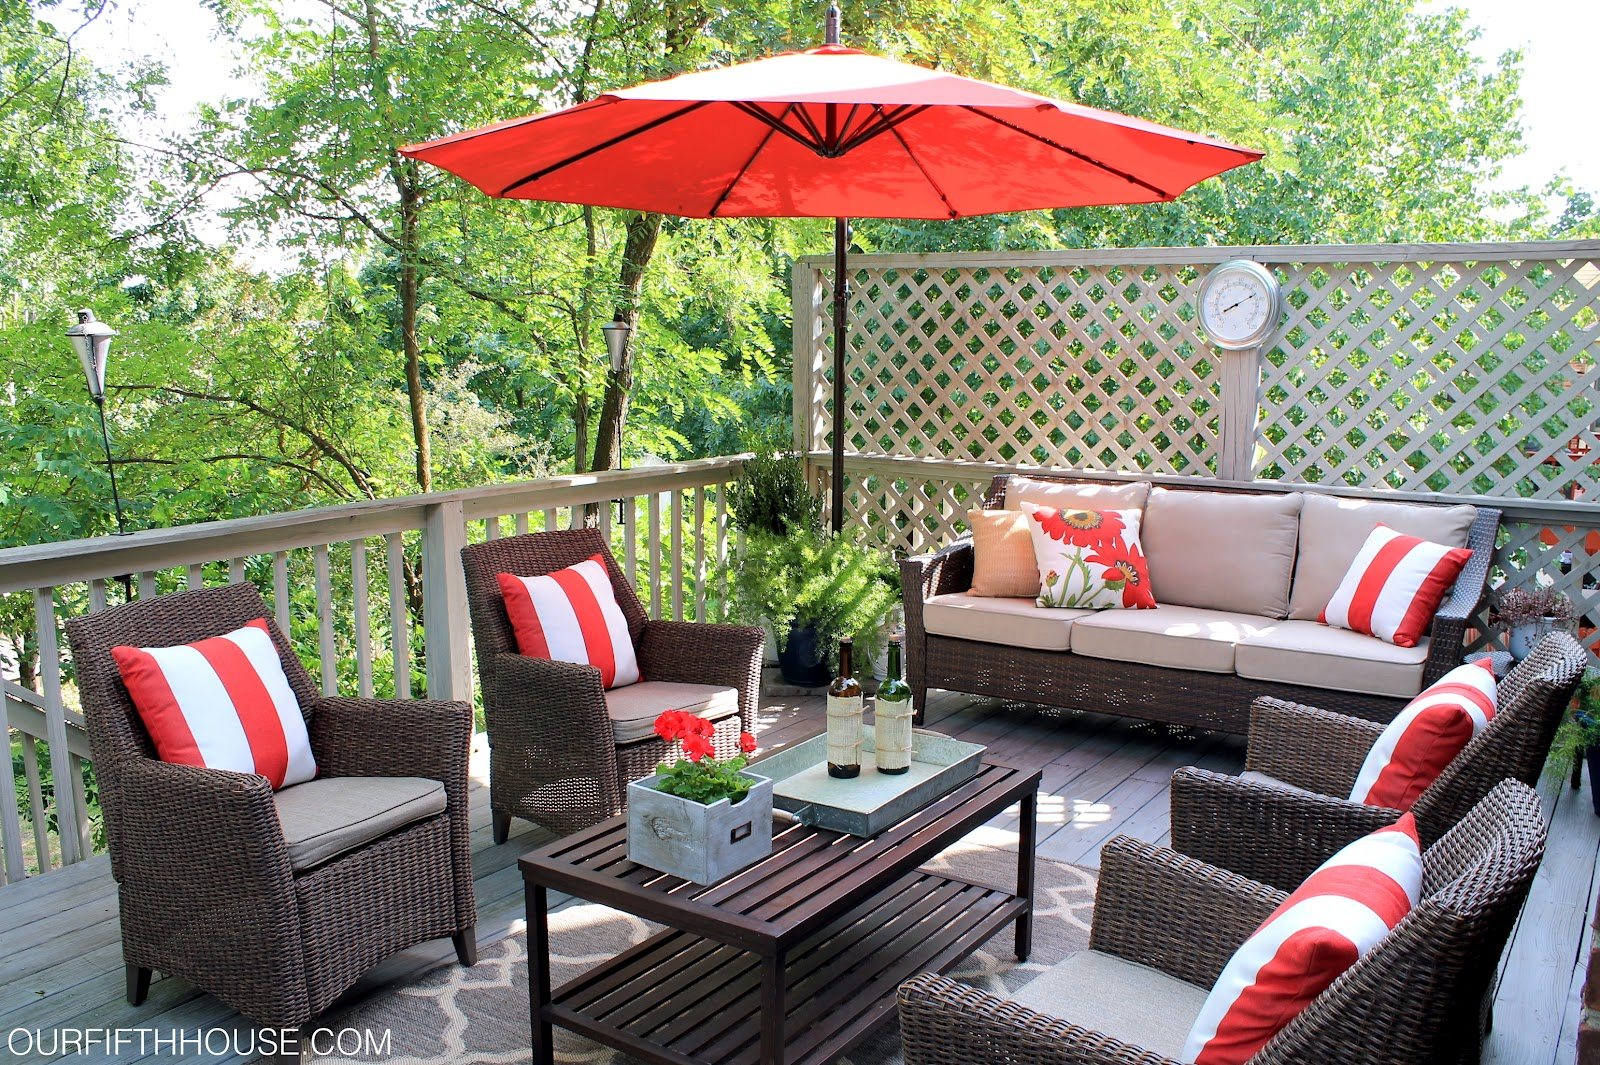 Outdoor Living (Deck Updates) - Our Fifth House on Living Spaces Patio Set id=32499